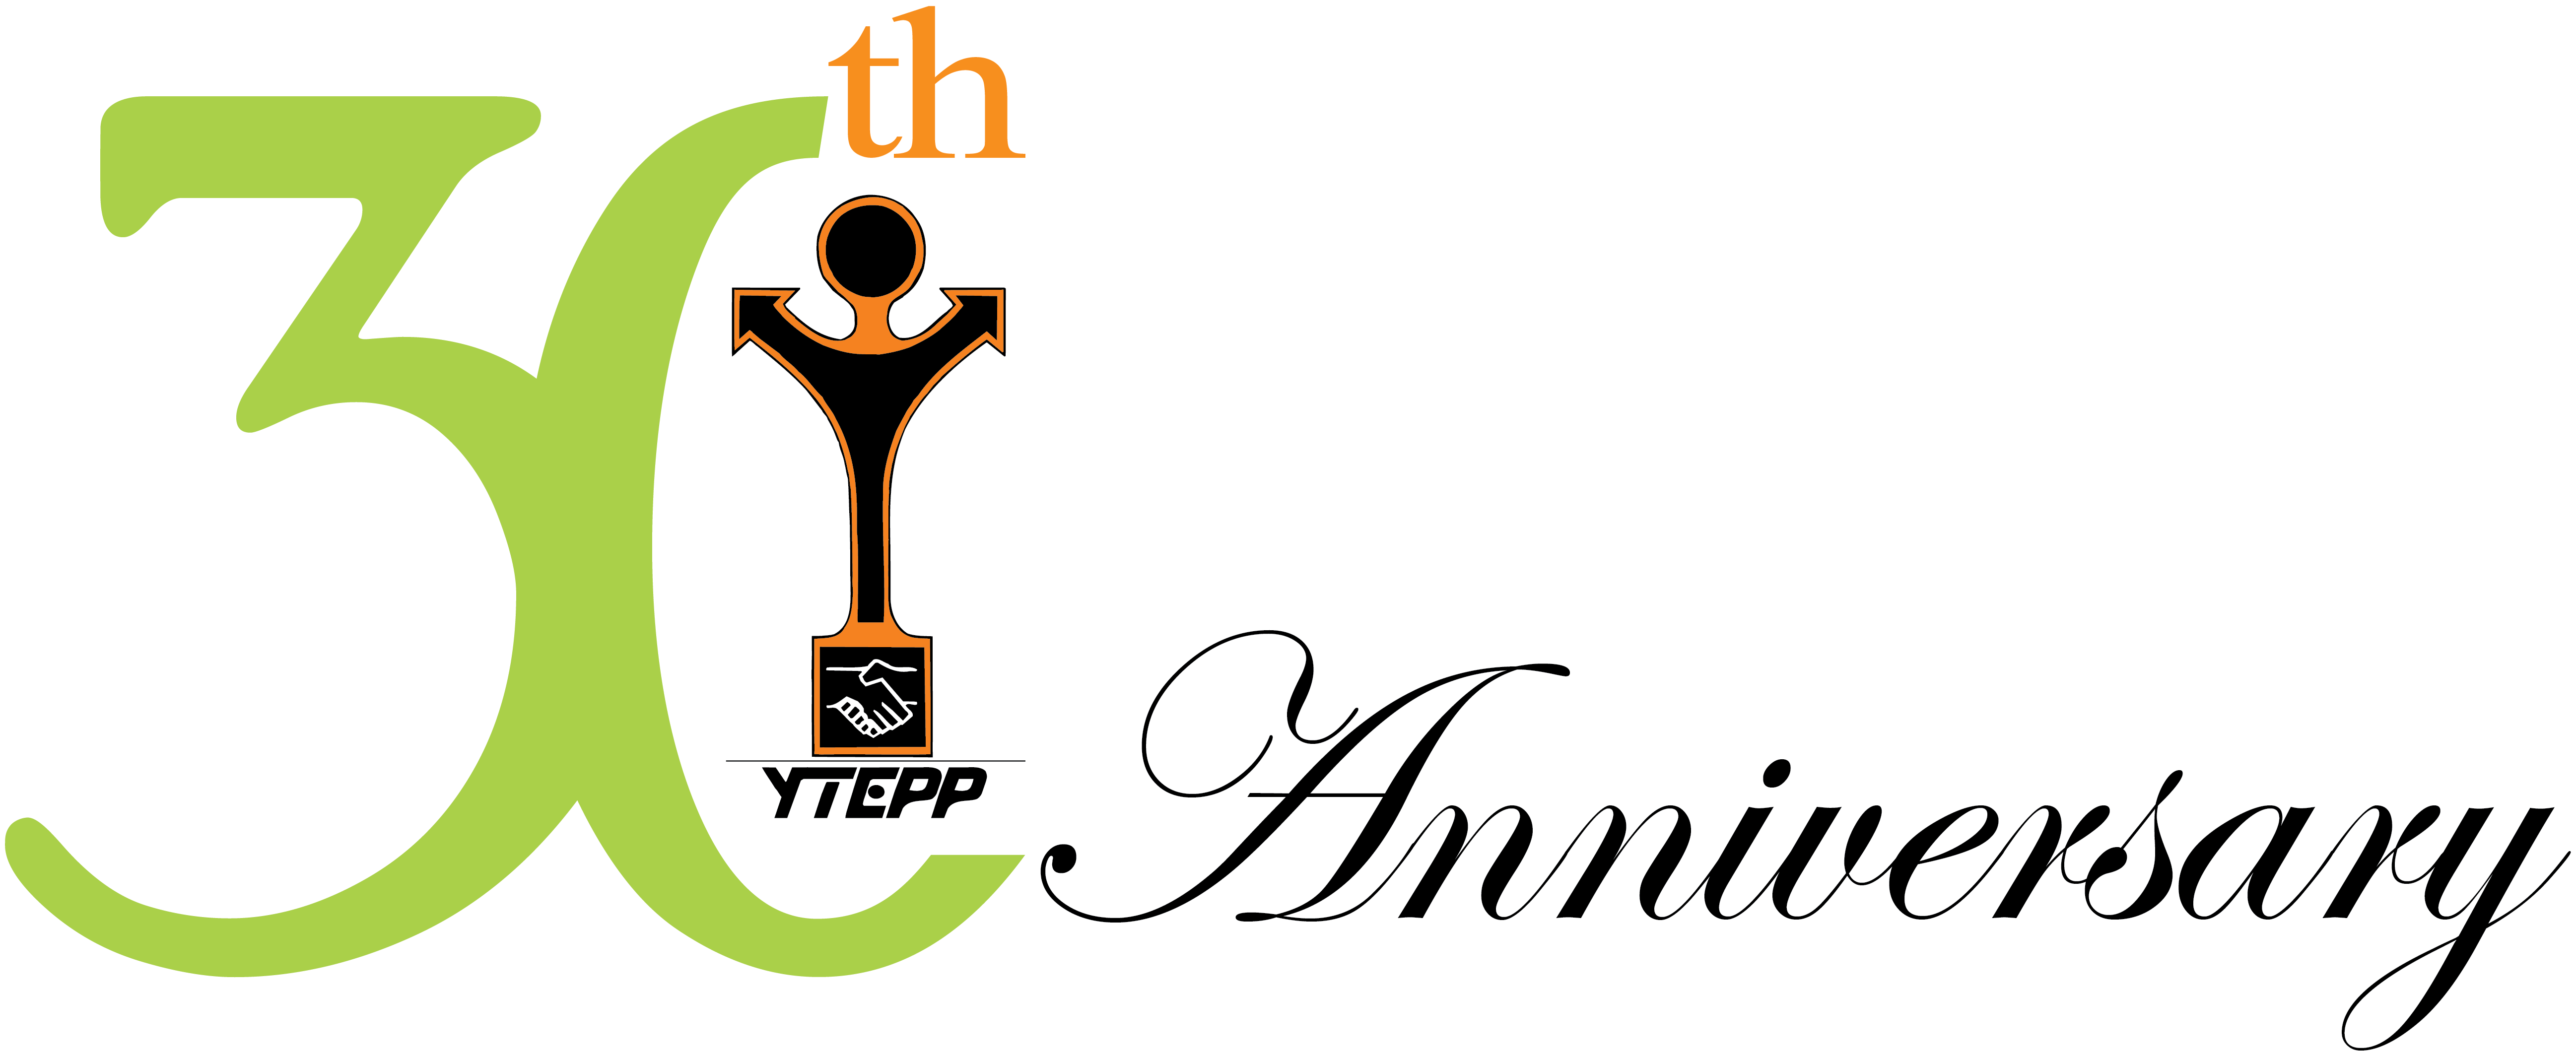 YTEPP Limited